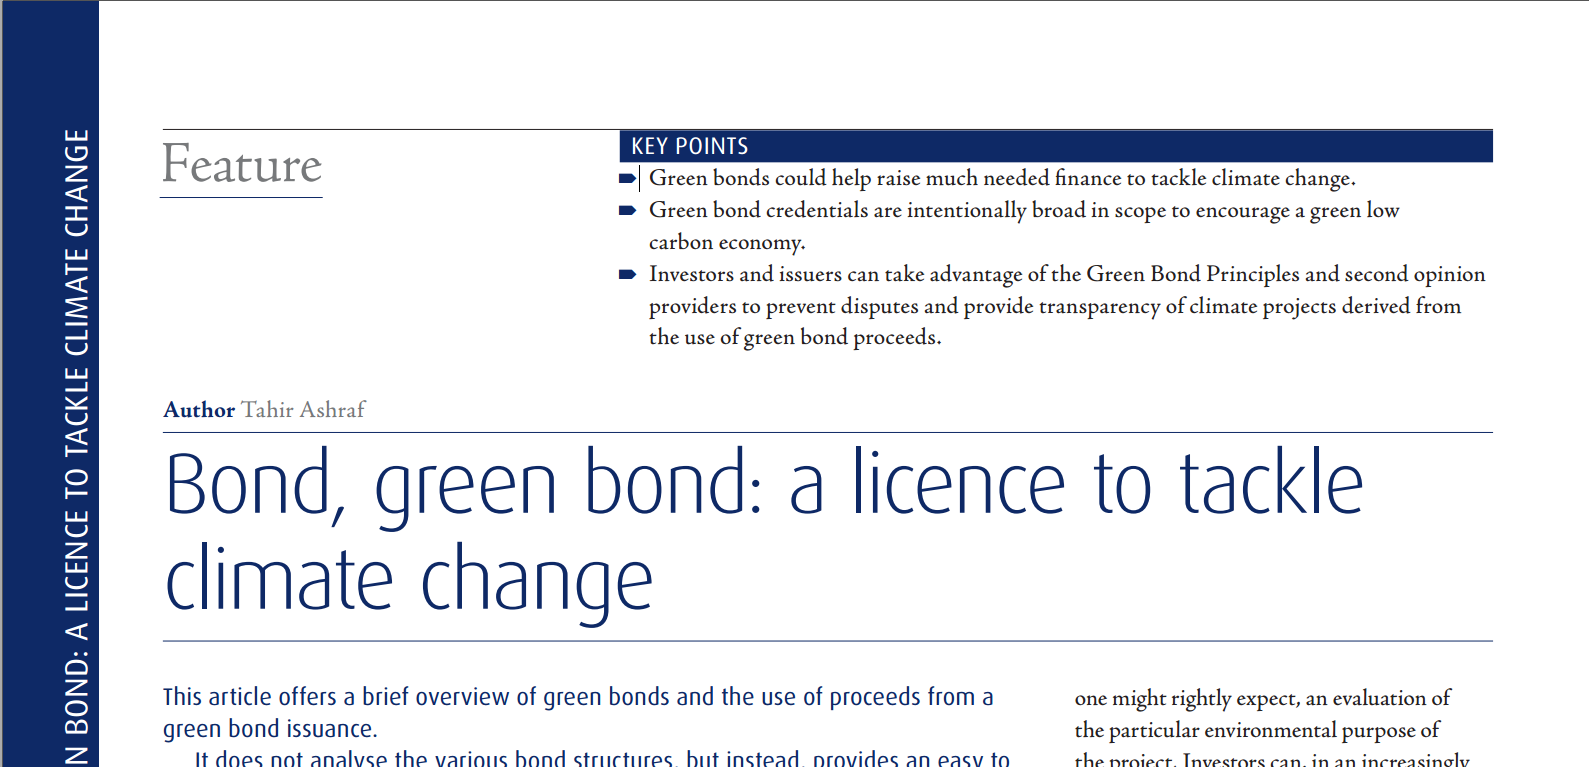 Green Bonds and Climate Change Bond Green Bond_A Licence to Tackle Climate Change by barrister Tahir Ashraf